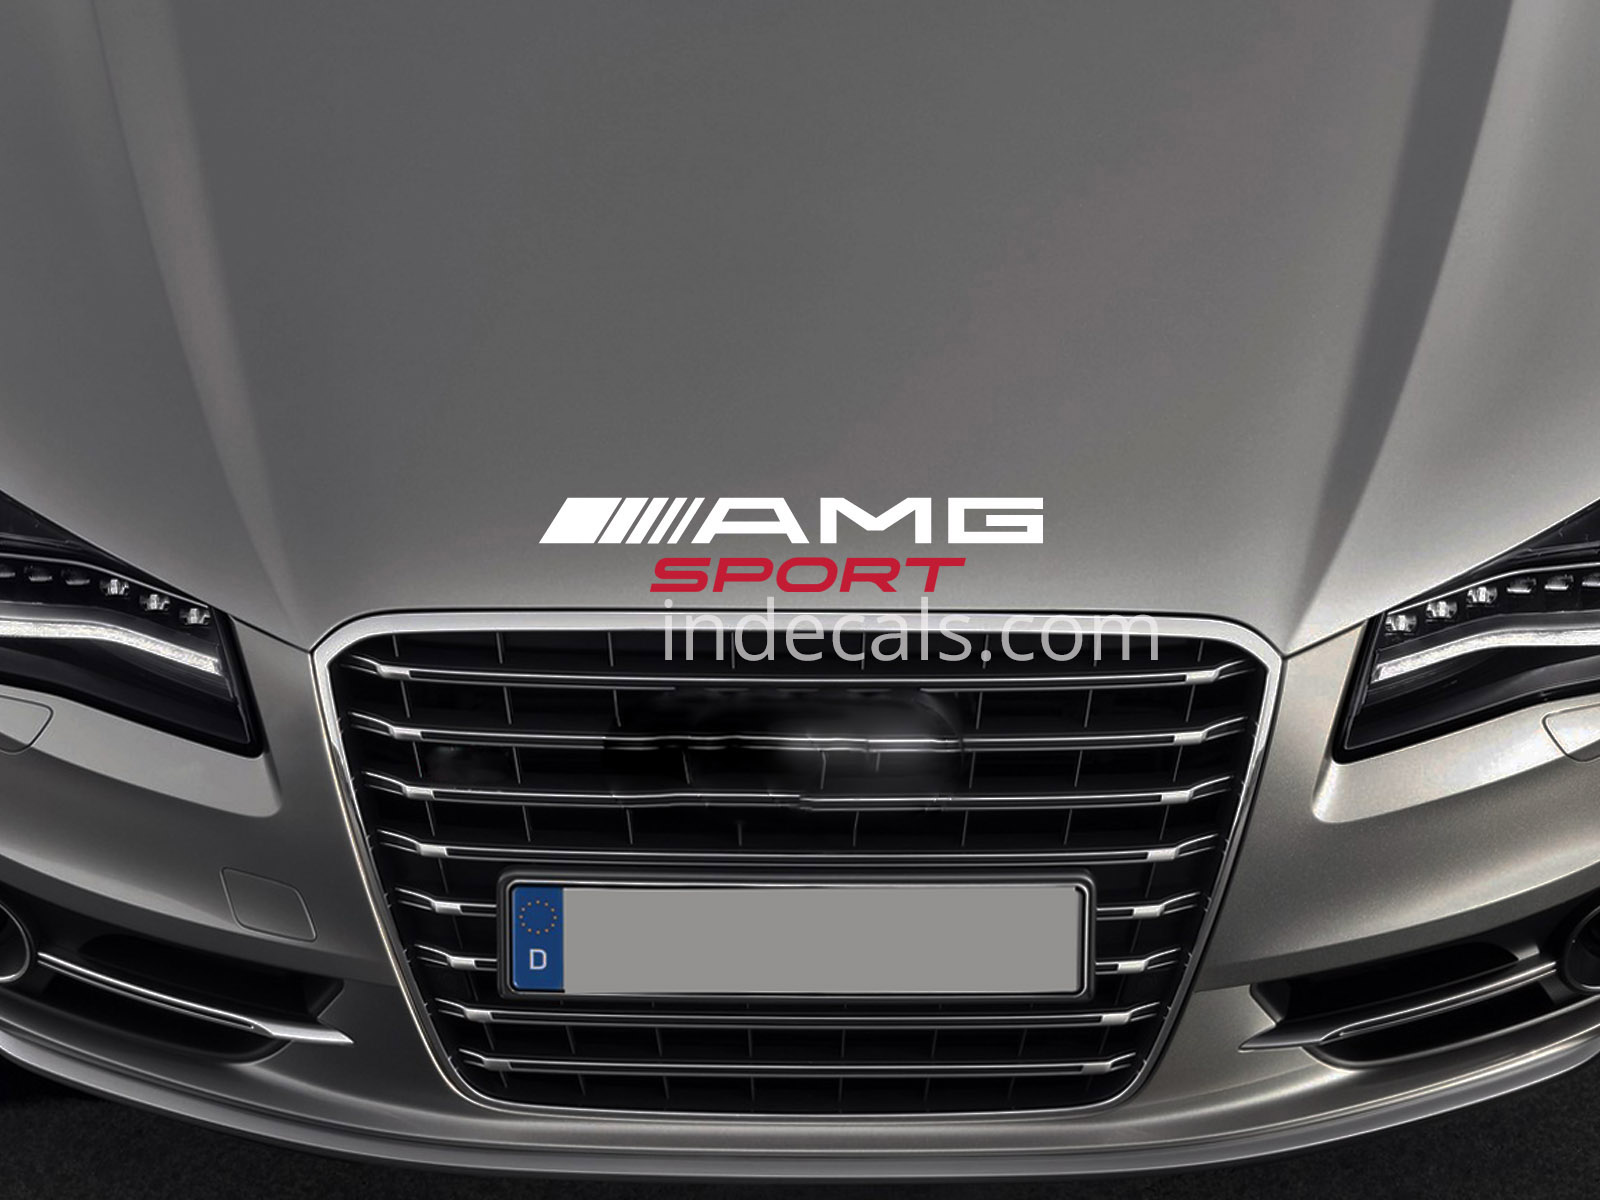 1 x AMG Sport Sticker for Bonnet - White & Red